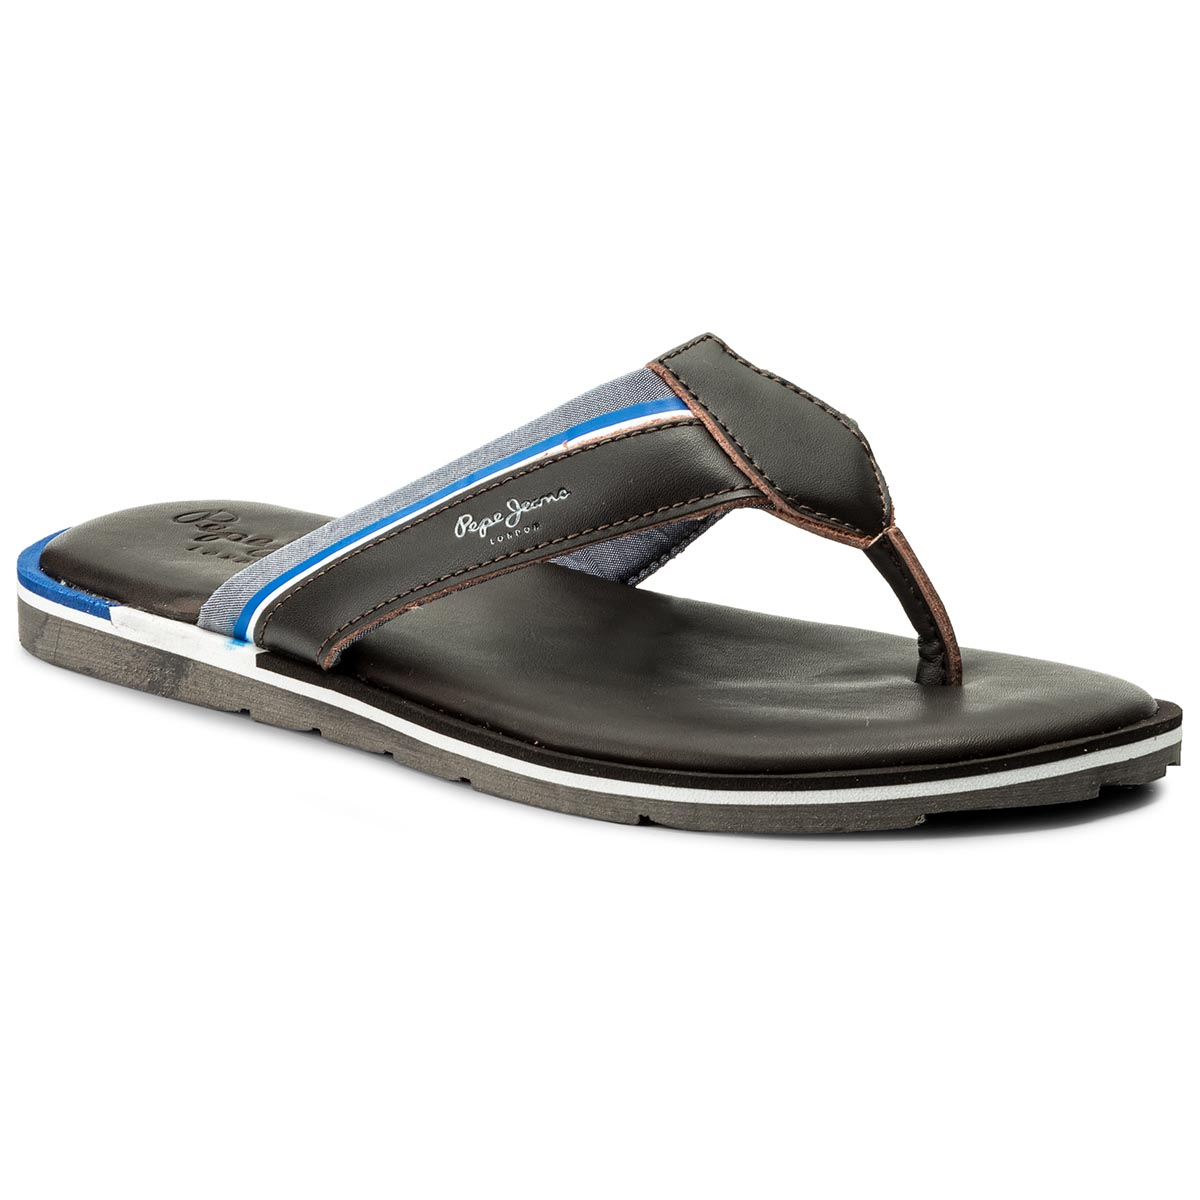 Flip flop PEPE JEANS - Barrel Fabric PMS90050 Dk Brown 898